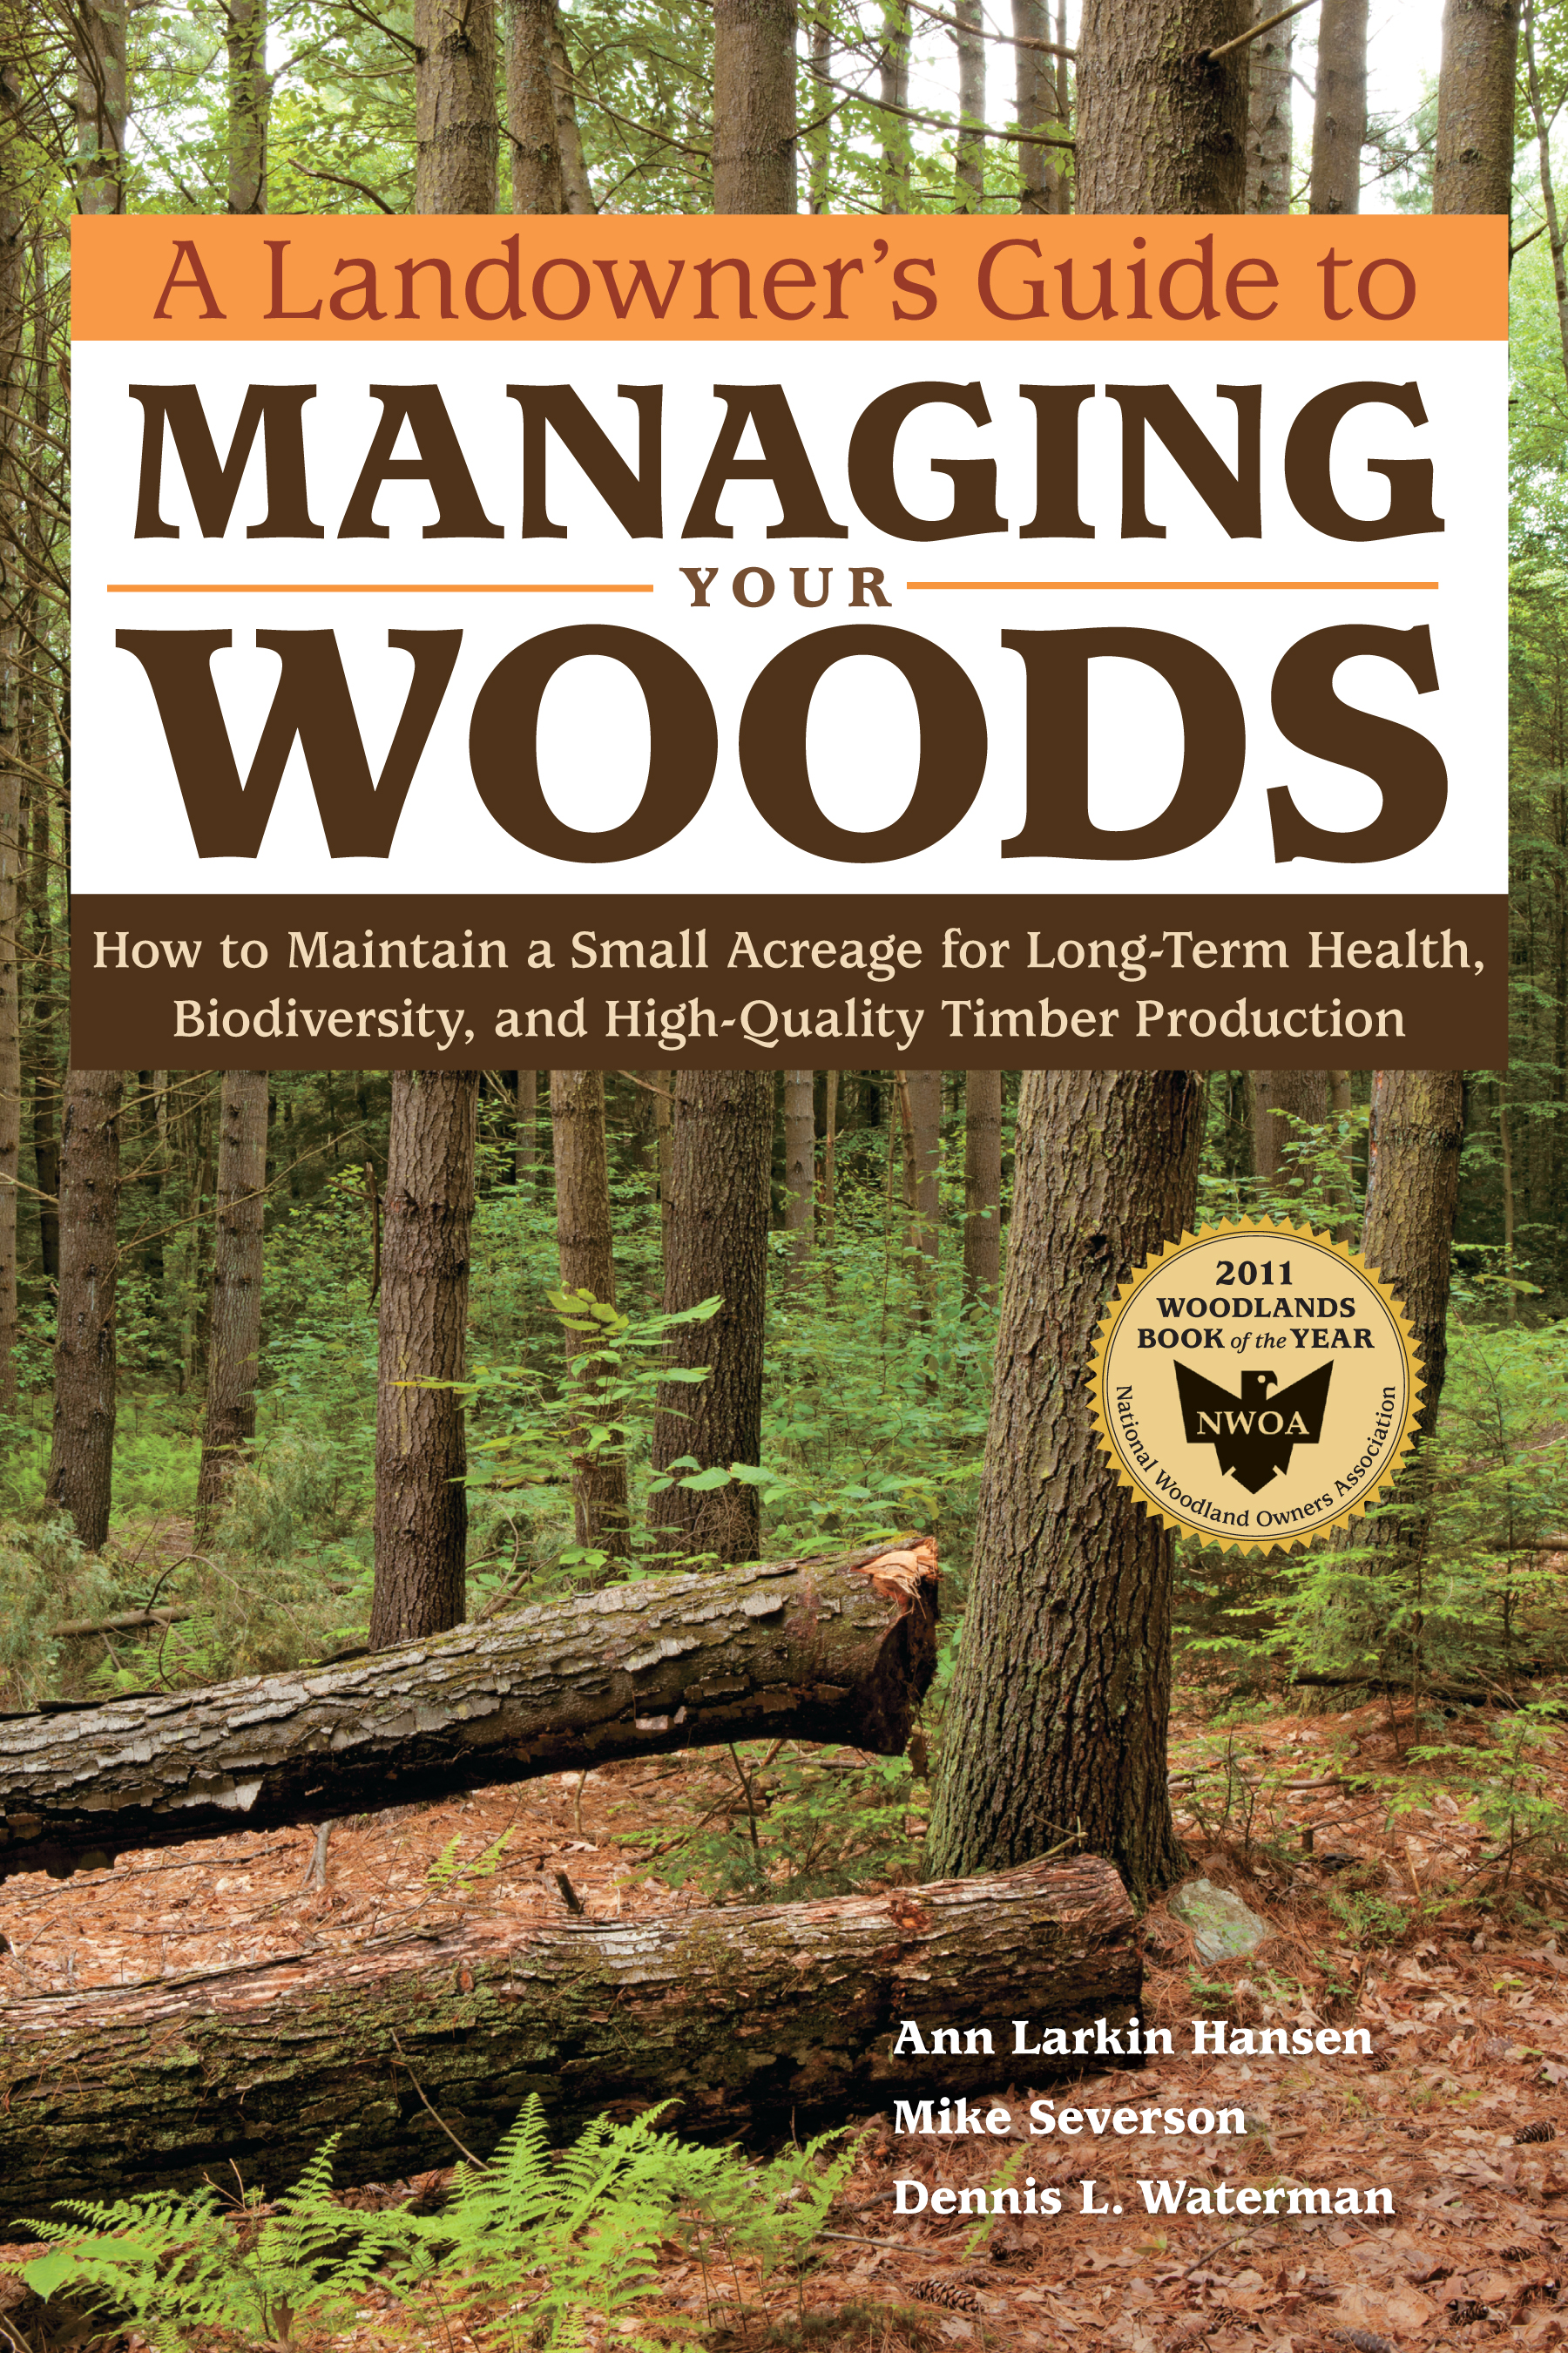 A Landowner's Guide to Managing Your Woods How to Maintain a Small Acreage for Long-Term Health, Biodiversity, and High-Quality Timber Production - Anne Larkin Hansen